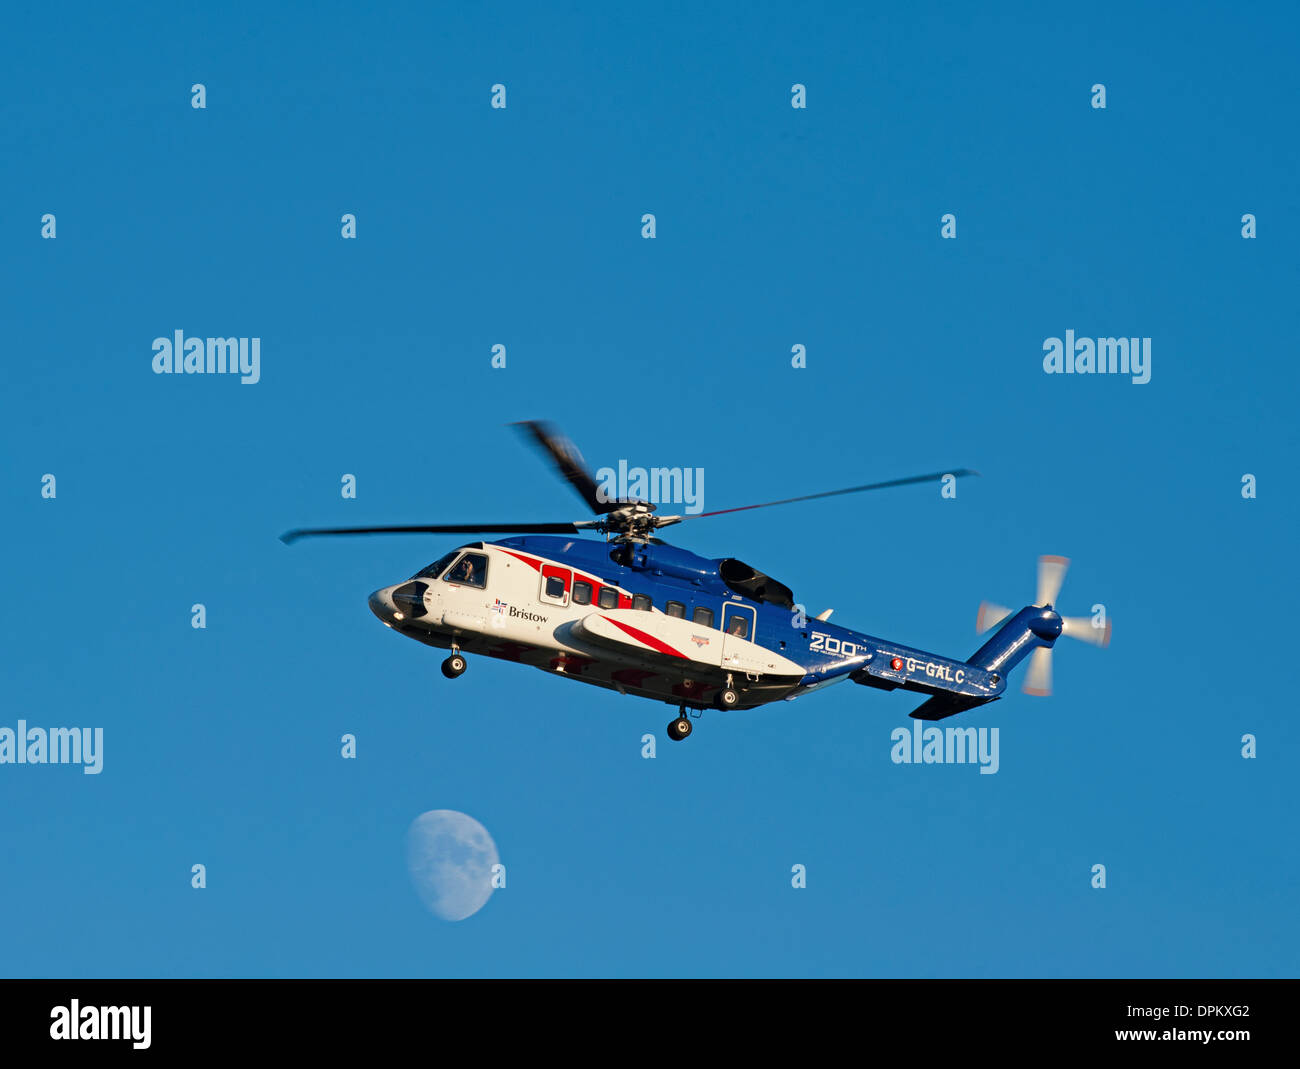 Bristow Helicopter G-GALC Sikorsky S92 approaching Aberdeen Airport. Stock Photo